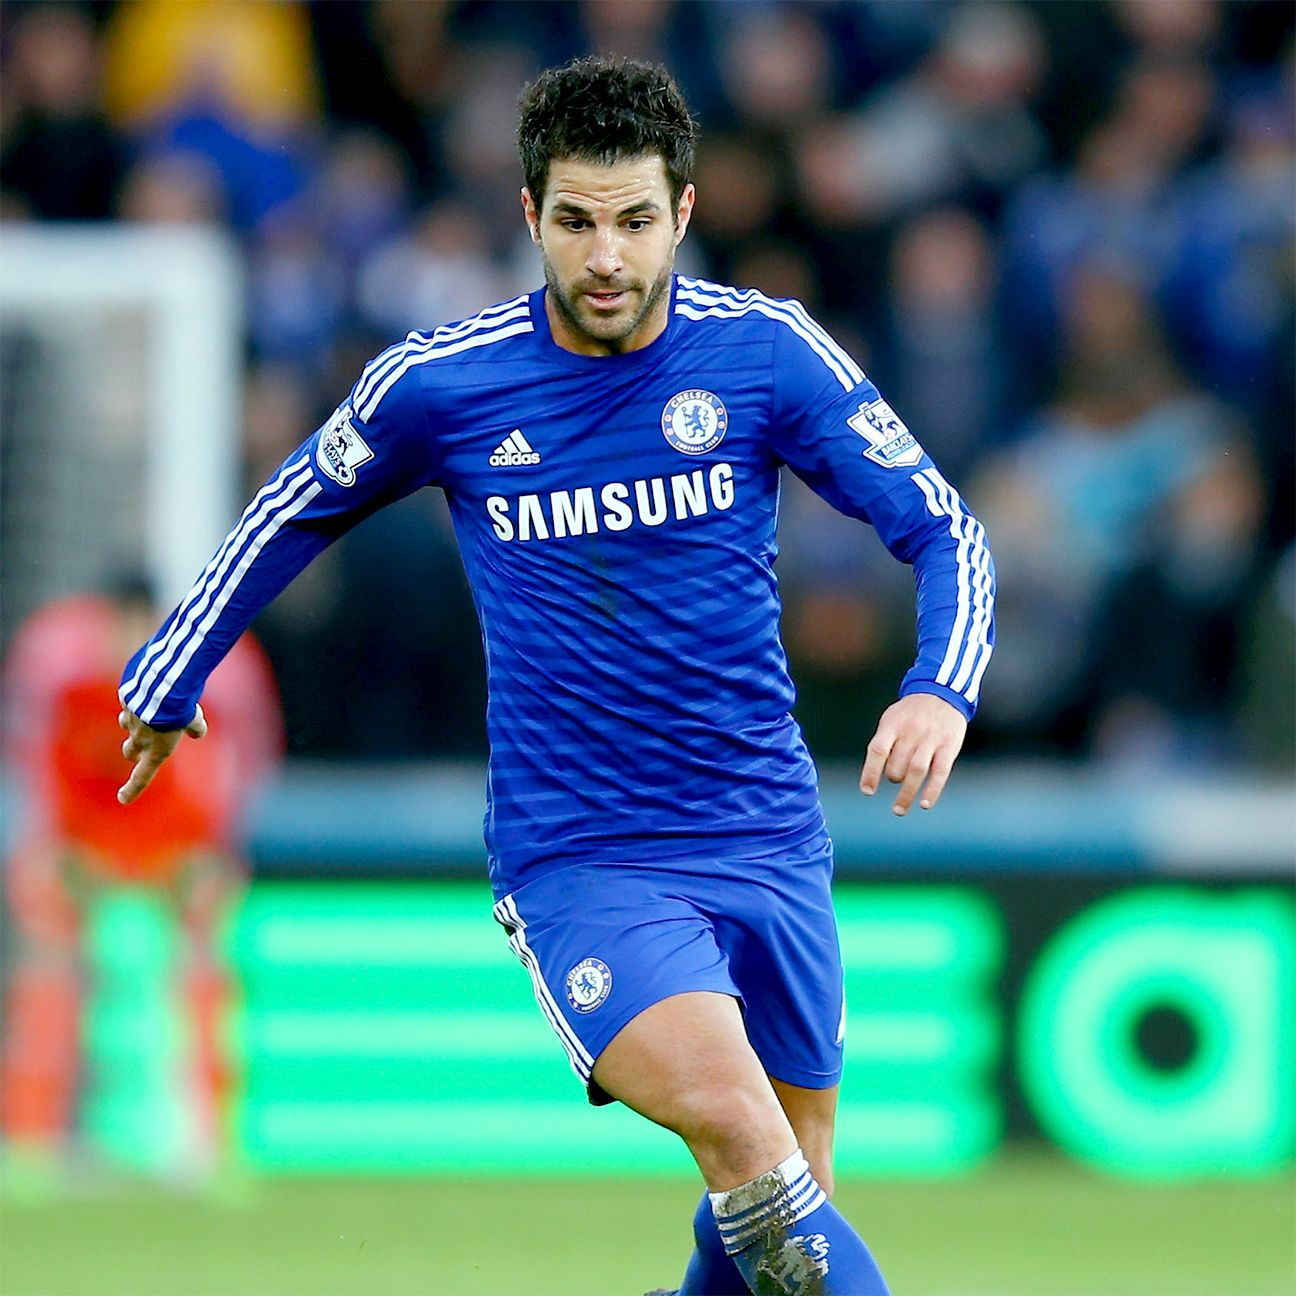 Cesc Fabregas led the Premier League in assists, completed passes and completed through balls.